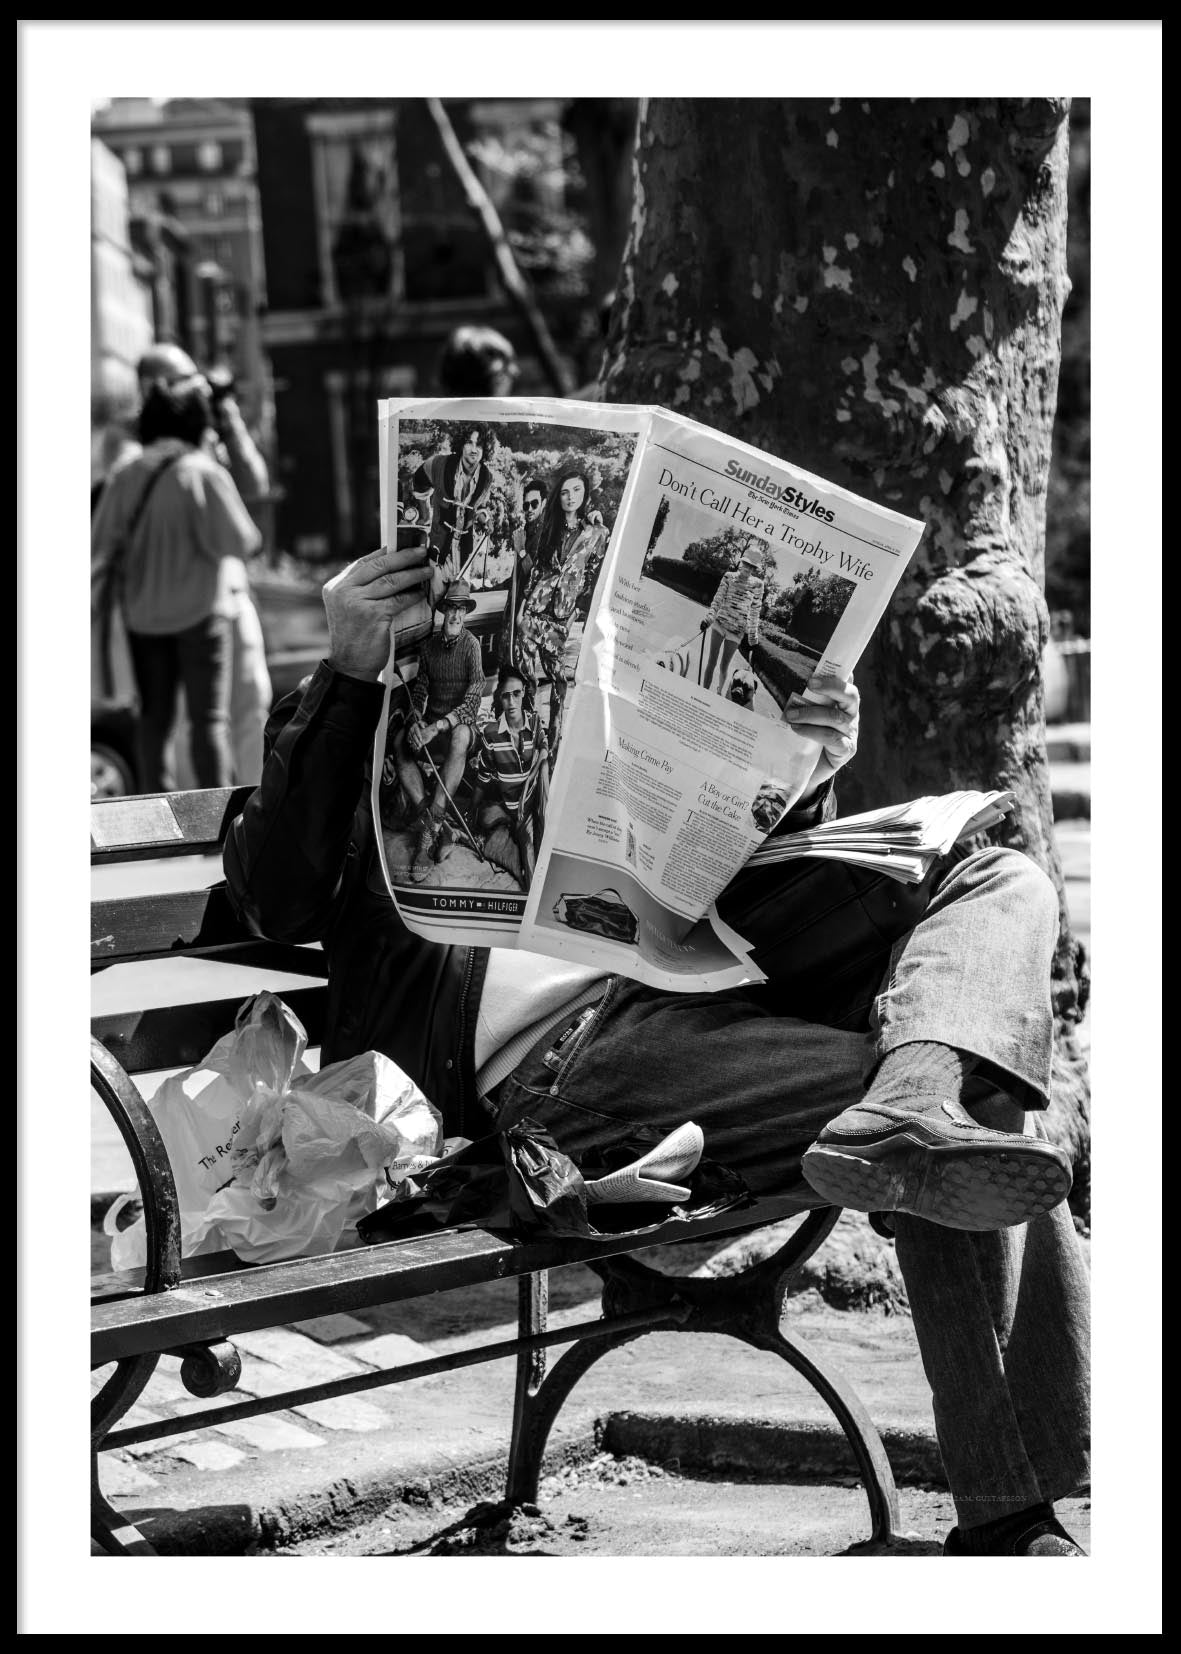 READING NEWSPAPER NEW YORK POSTER